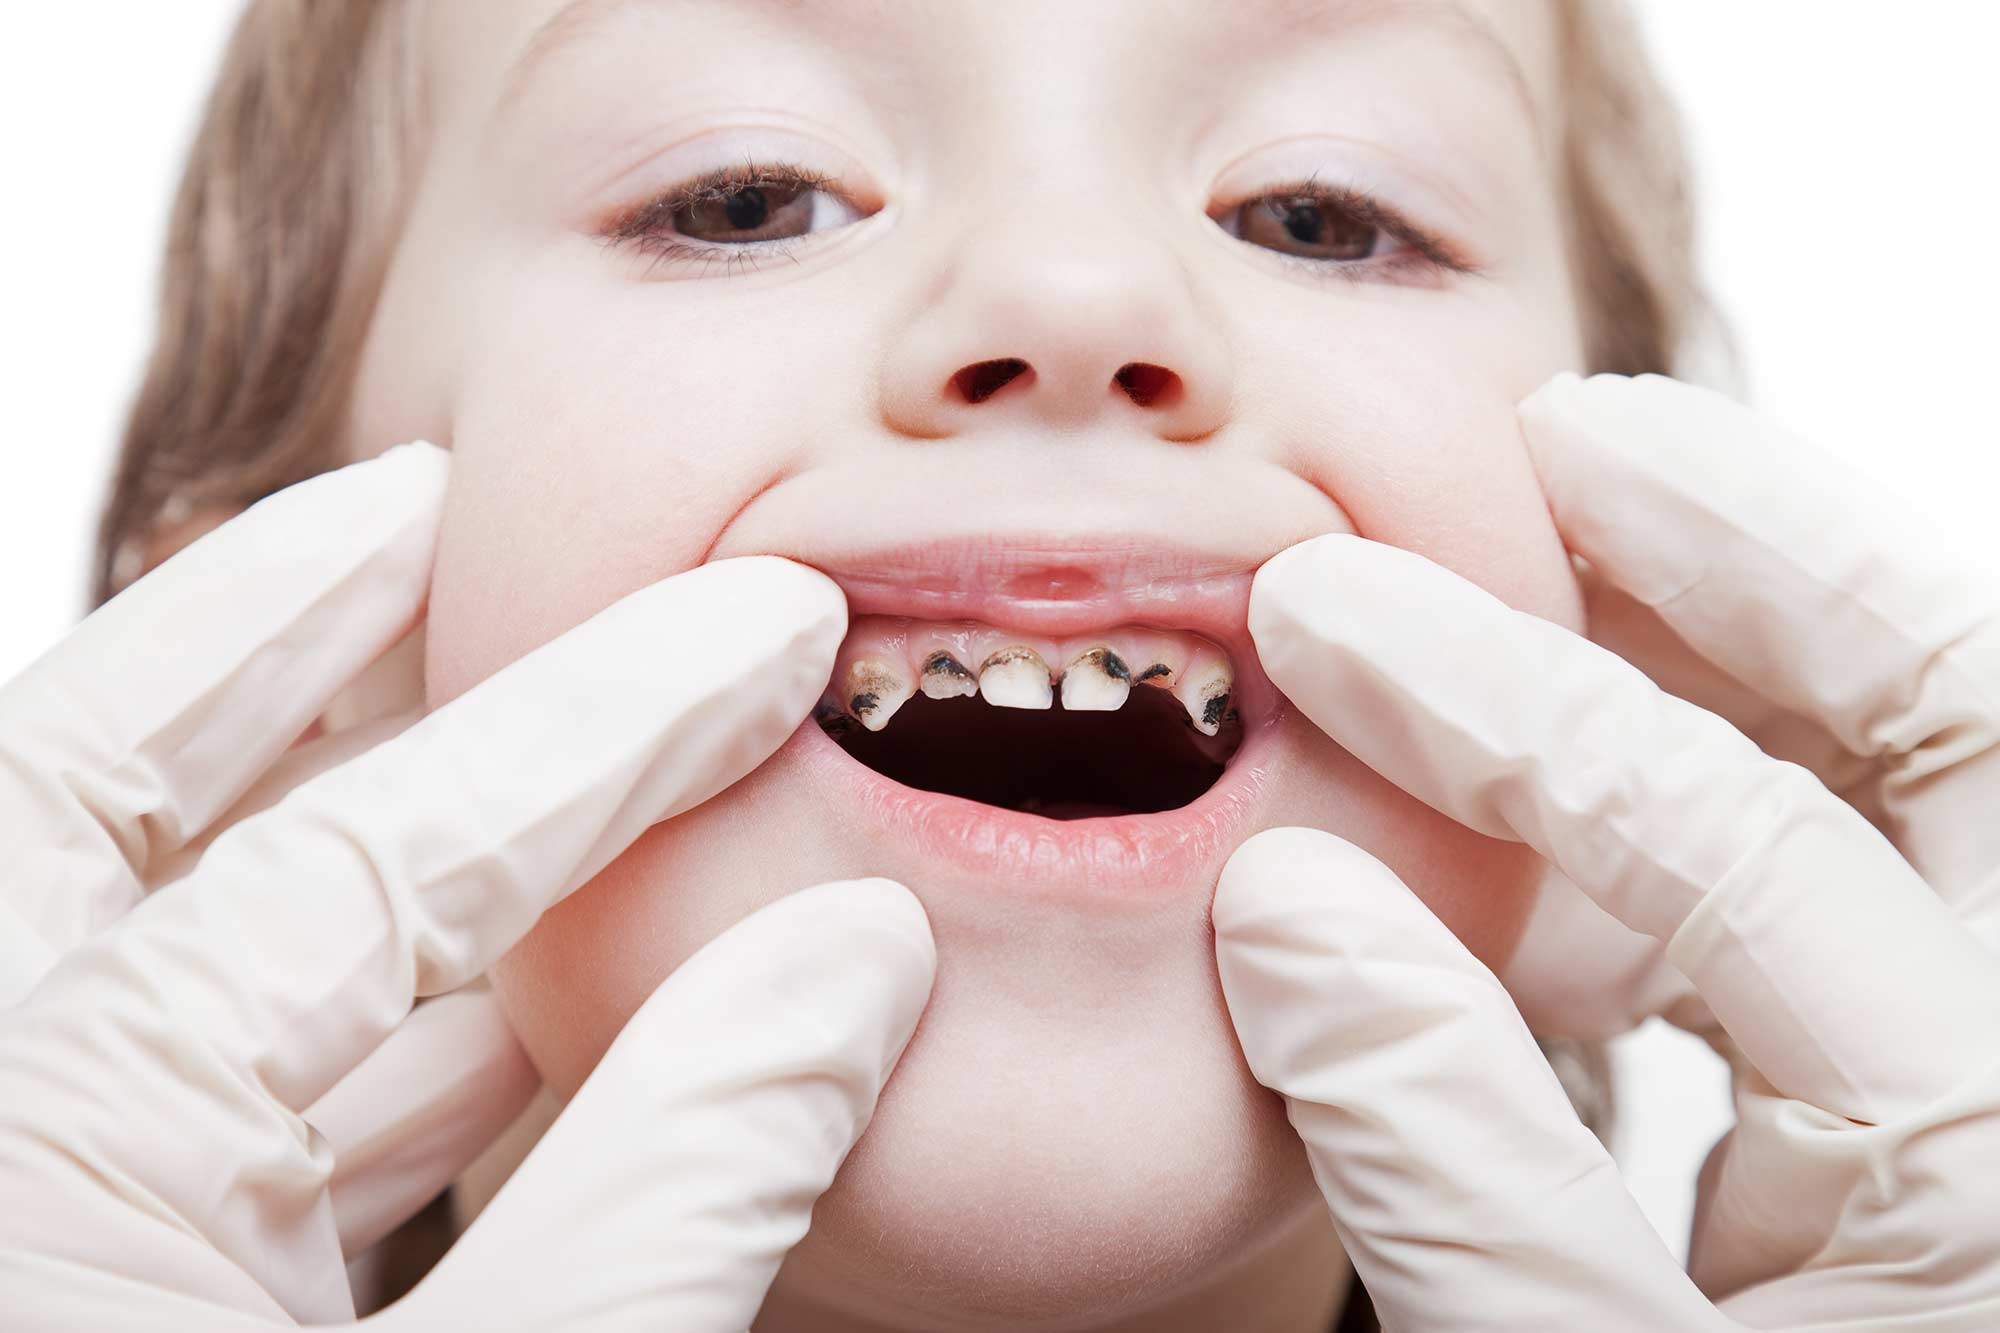 One in four five year olds experience tooth decay, according to new PHE data